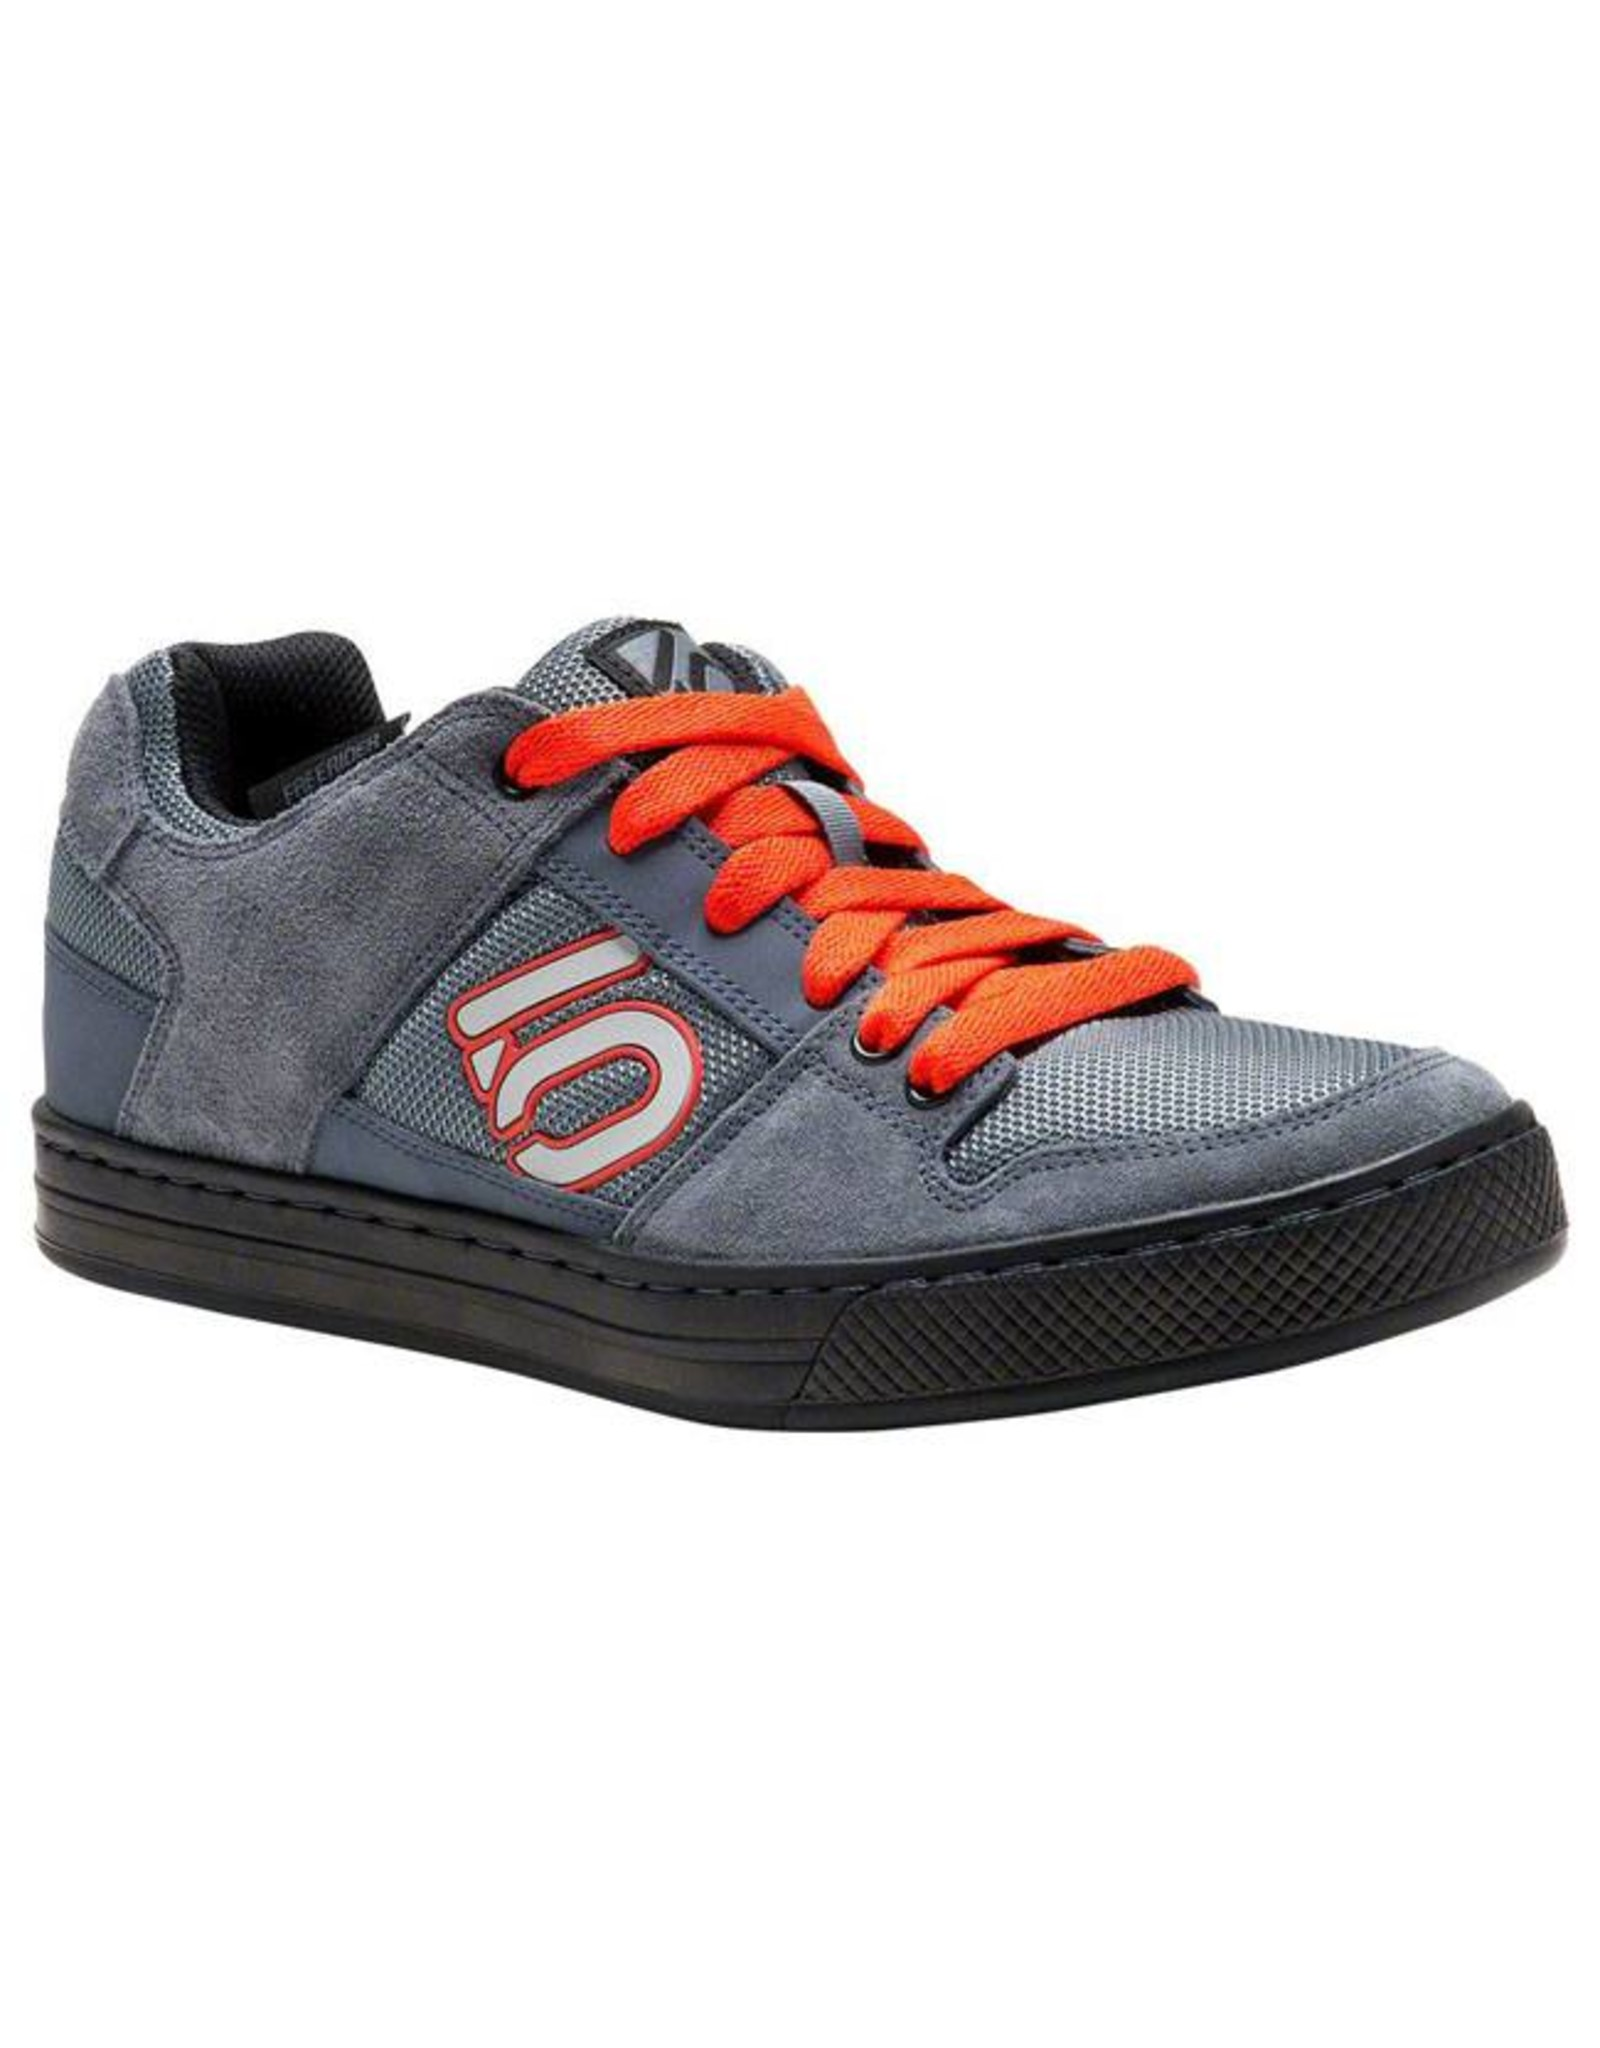 Five Ten Five Ten Freerider Men's Flat Pedal Shoe: Gray/Orange 6.5